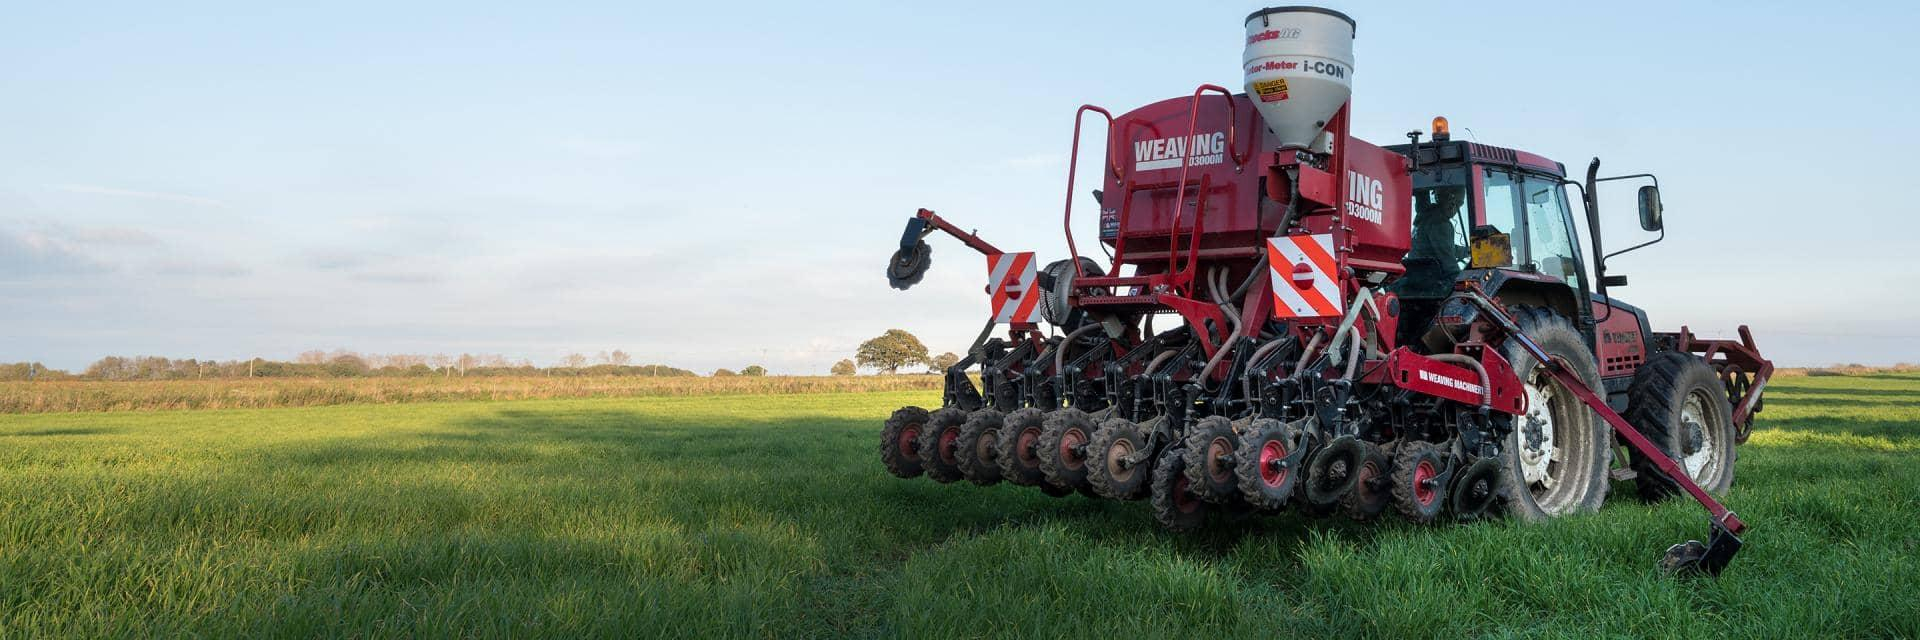 A large red agricultural vehicle being driven through a field of grass